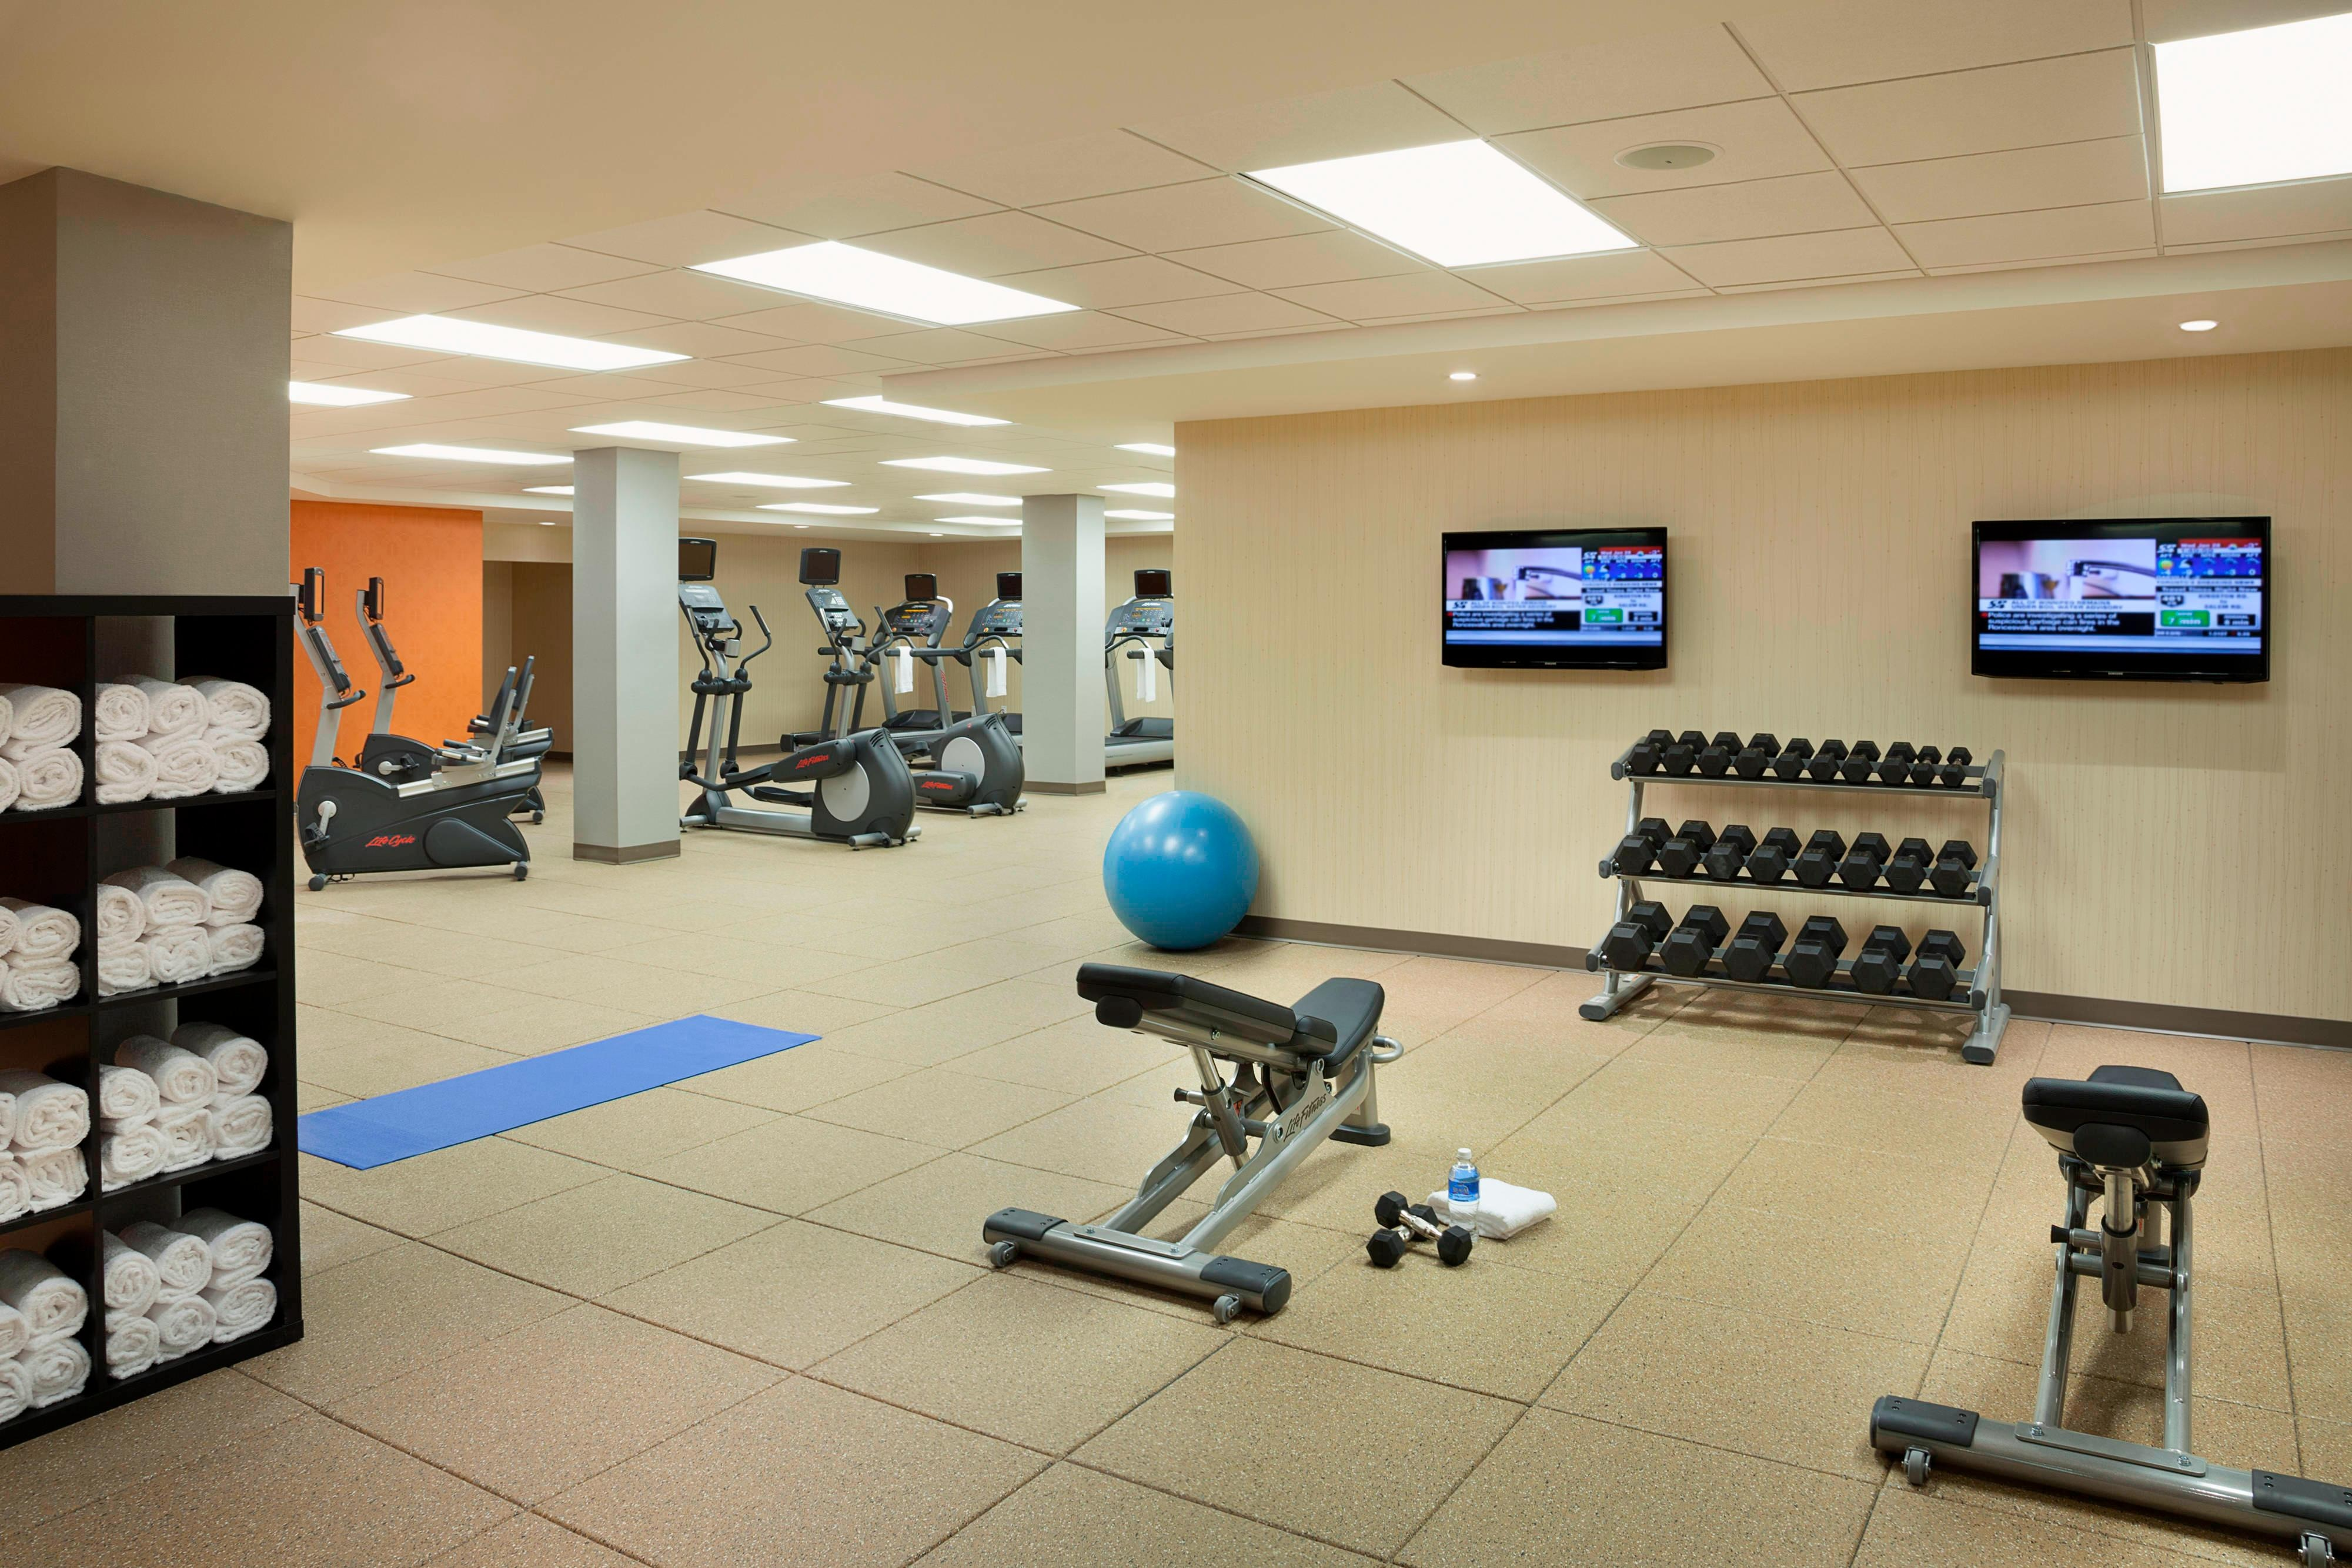 Fitness centre in Markham hotel